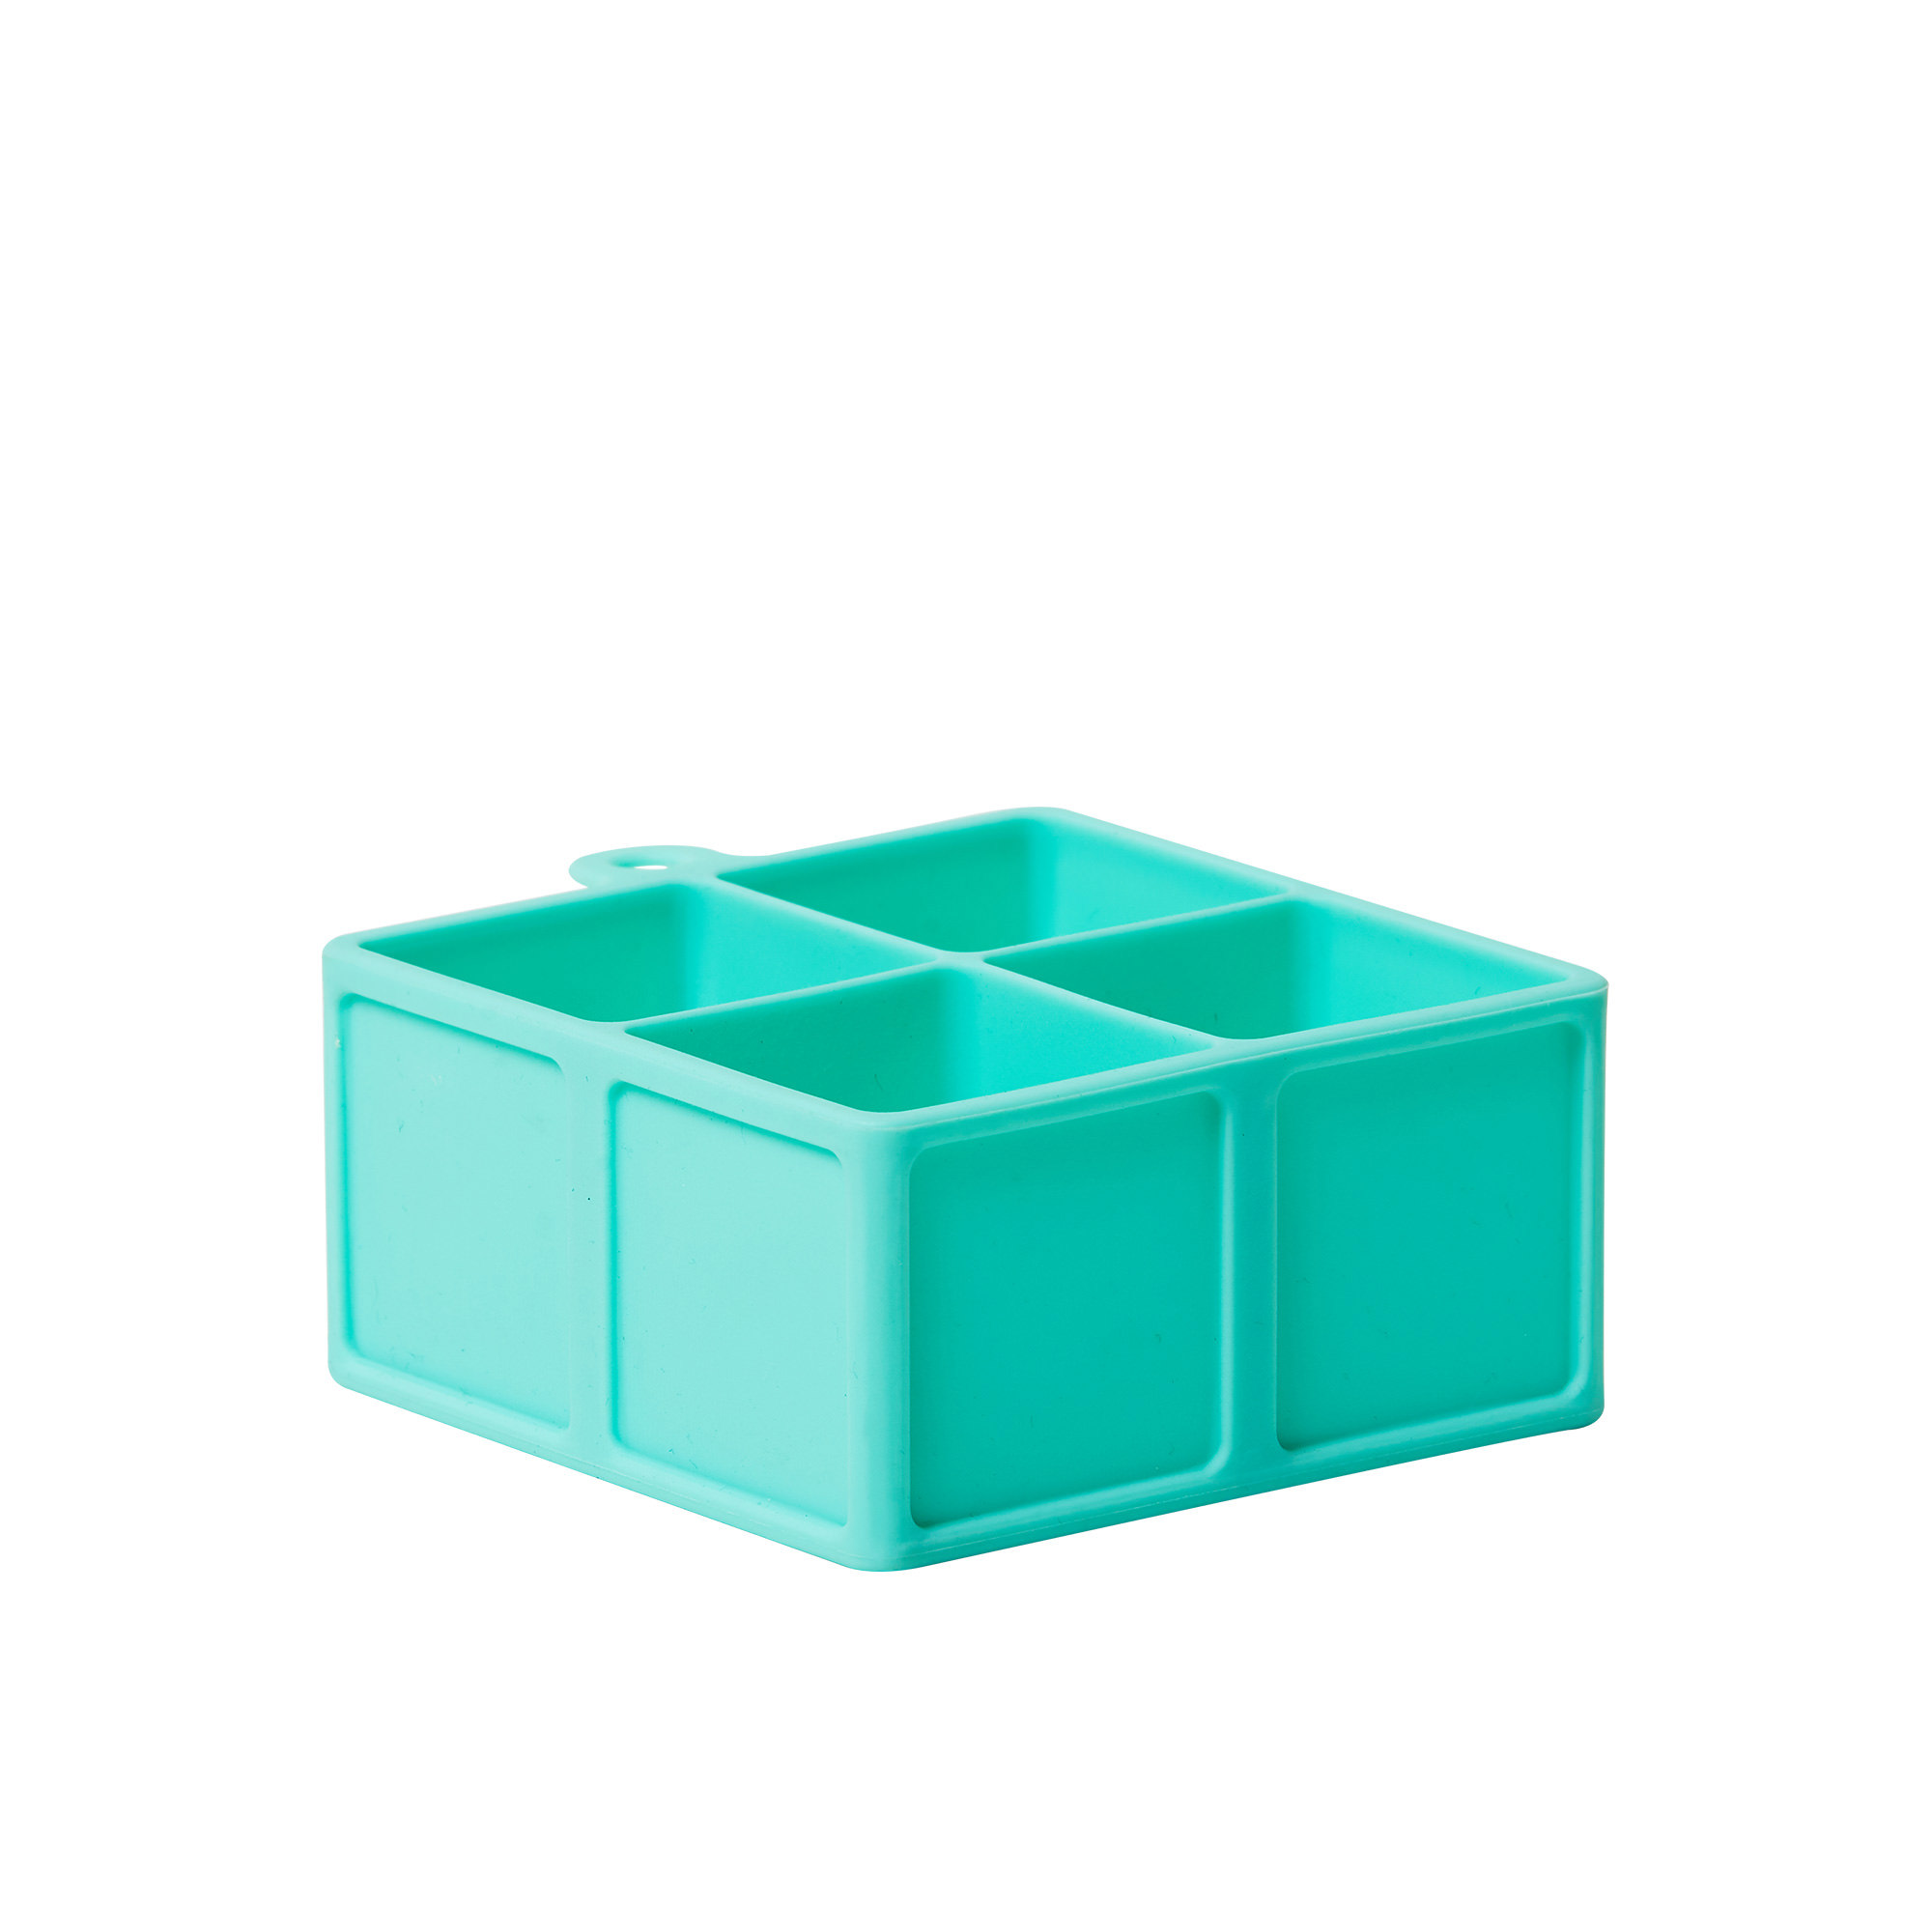 Kitchen Pro 4 Cube Jumbo Silicone Ice Tray